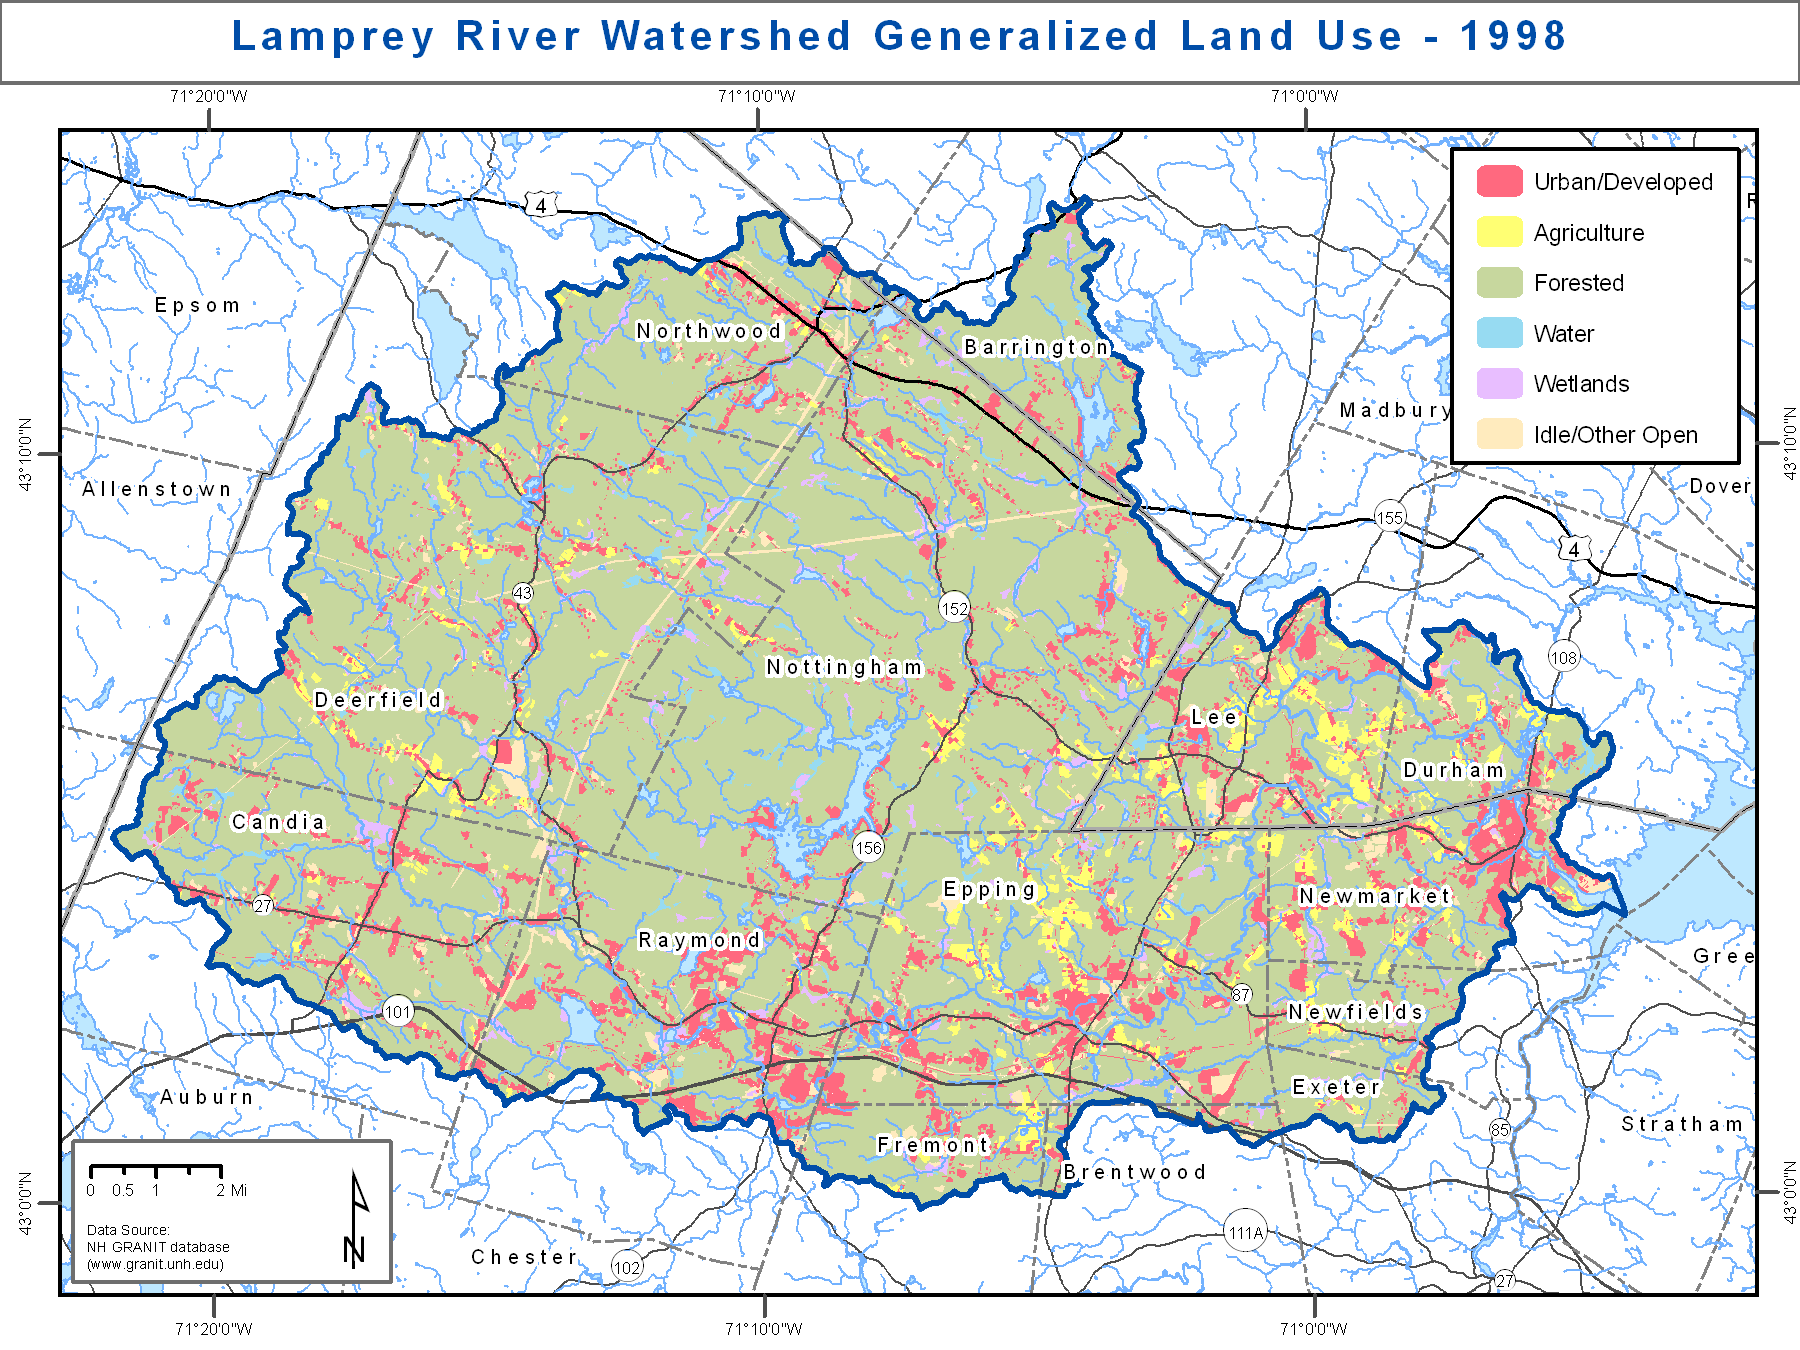 Maps & Resources - Lamprey River 100 Year Flood Risk Project Map Of Epping New Ha on map of riverwood, map of bottineau, map of penshurst, map of zeeland, map of sanbornton, map of turtle lake, map of essex, map of west melbourne, map of boscawen, map of fort totten, map of high beach, map of kearns, map of ray, map of woolloomooloo, map of nashua, map of north ryde, map of lindfield, map of mount sunapee, map of braddock, map of portsmouth,